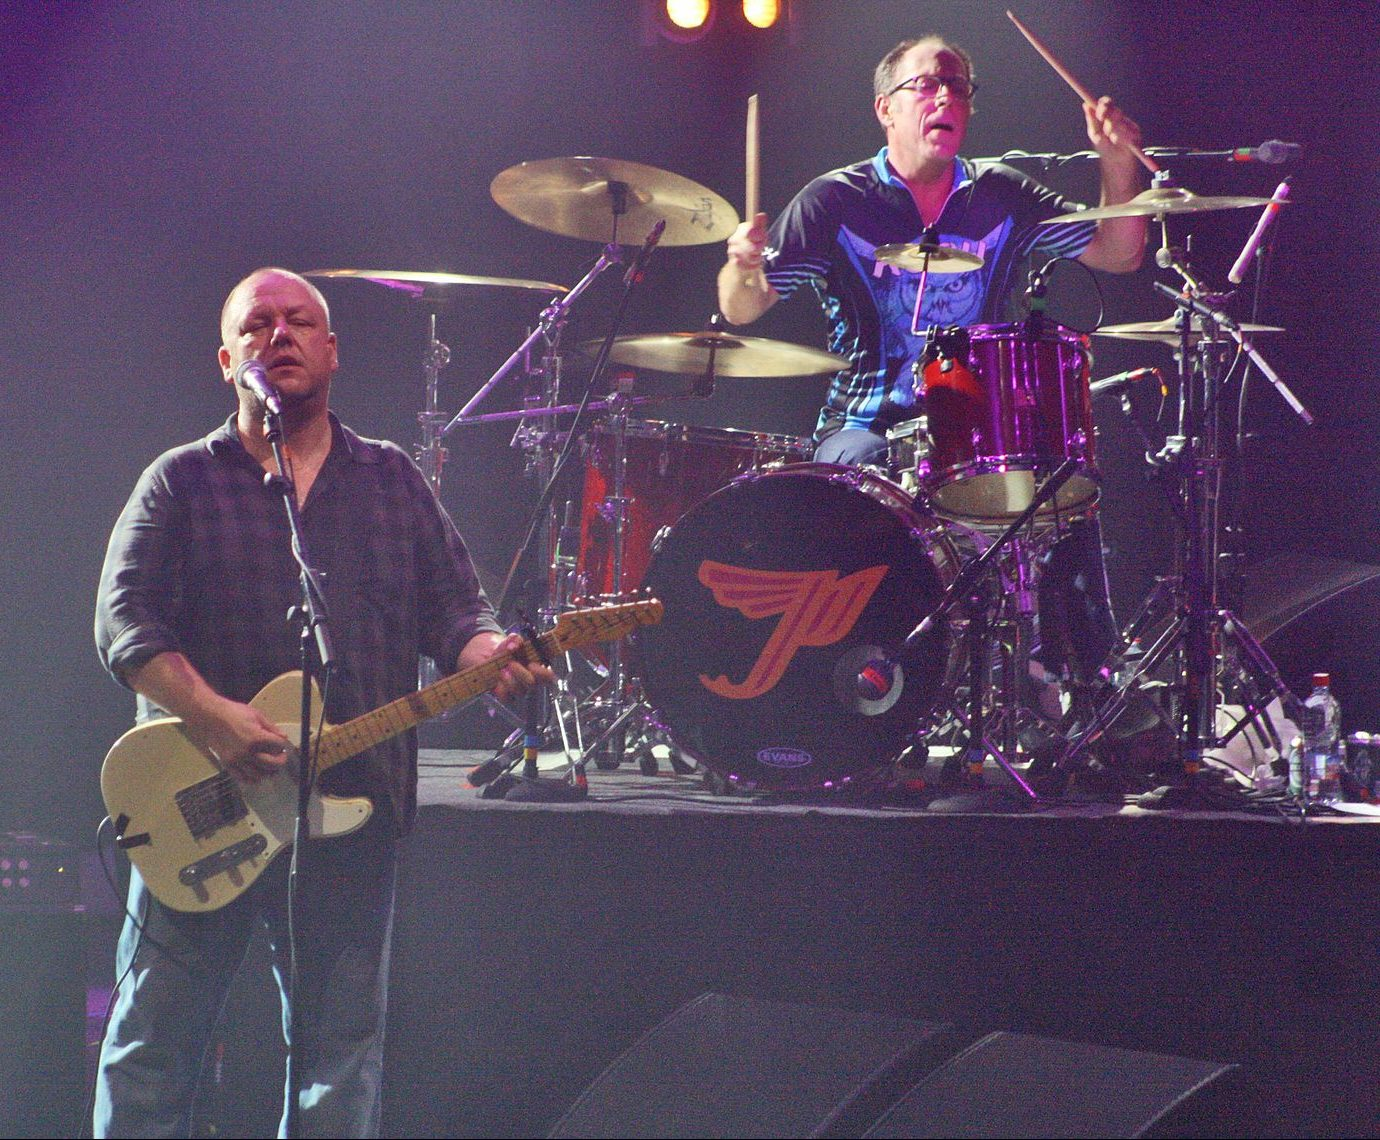 10 e1617703046721 10 Things You Probably Didn't Know About Pixies